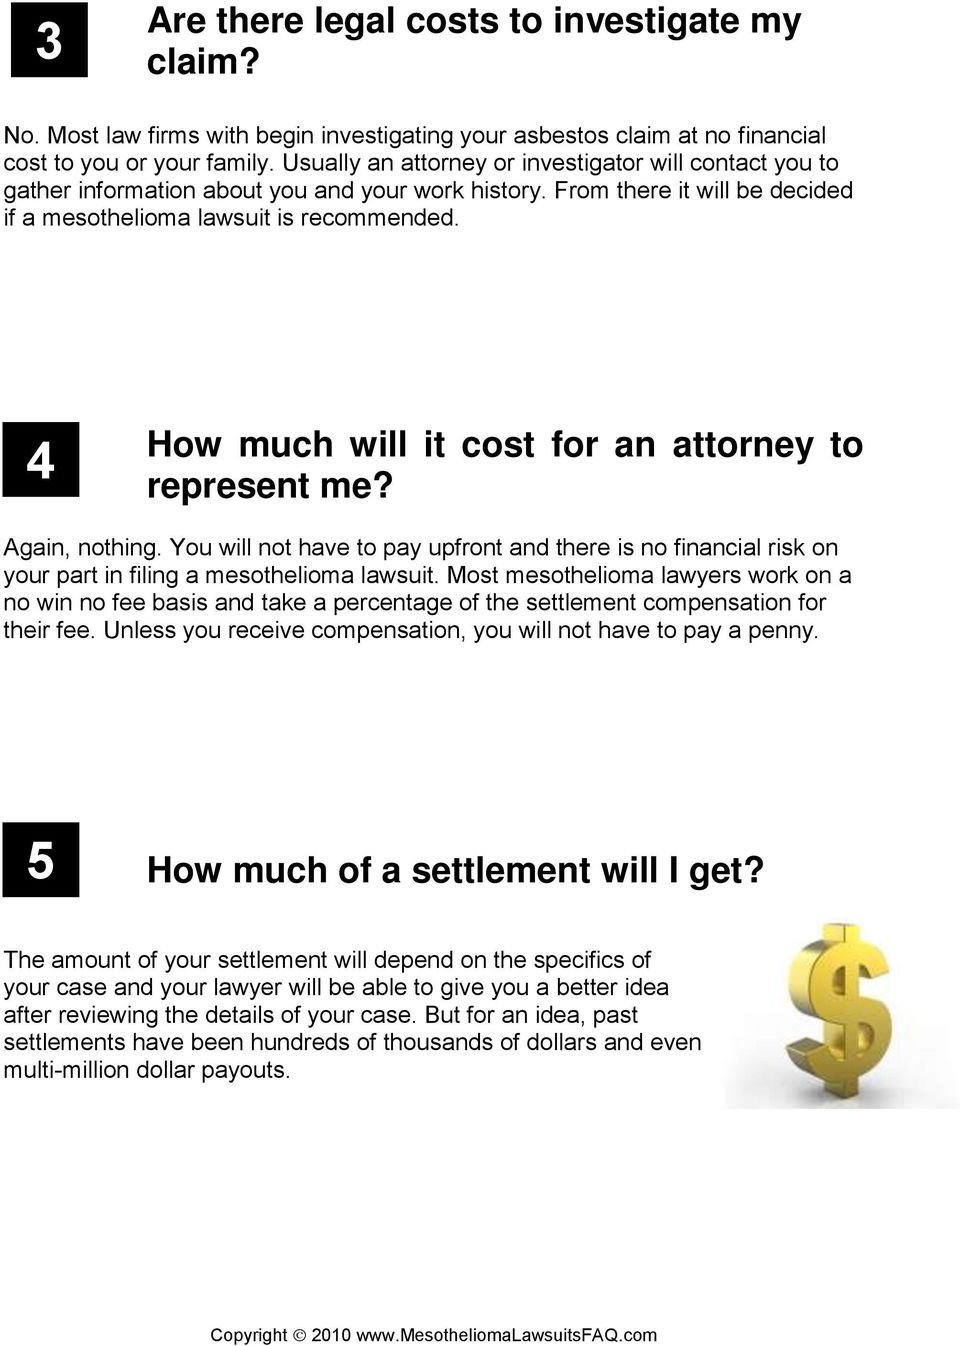 4 How much will it cost for an attorney to represent me? Again, nothing. You will not have to pay upfront and there is no financial risk on your part in filing a mesothelioma lawsuit.